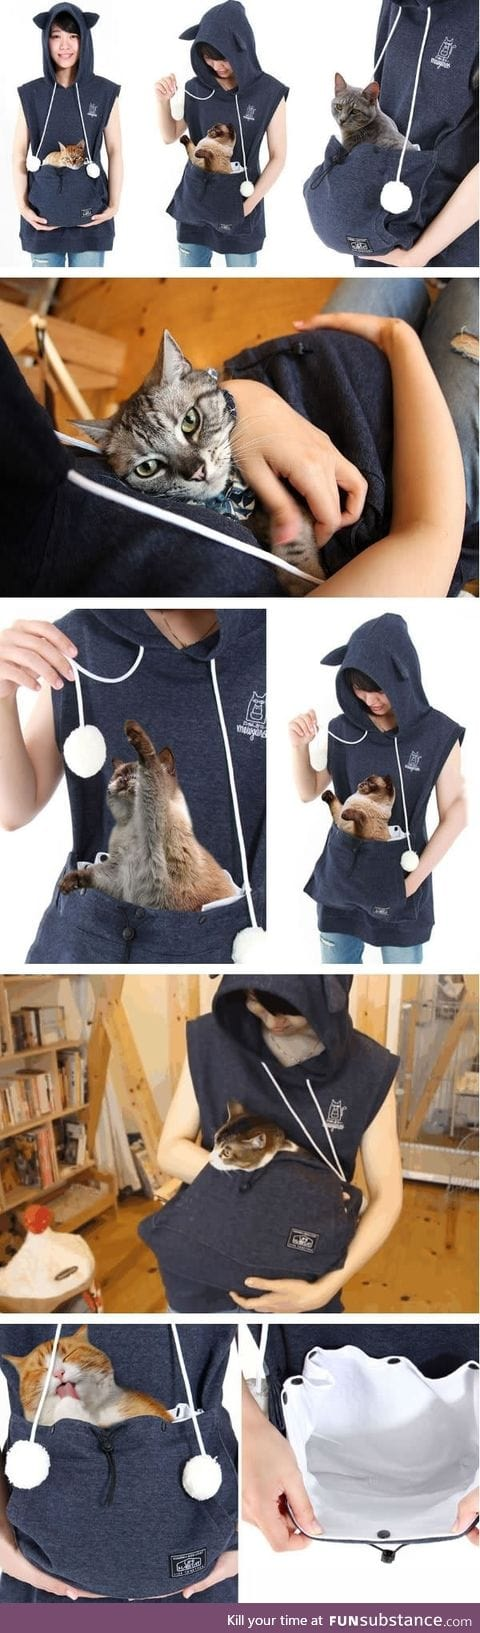 Cat hoodie with kangaroo pouch lets you take your cat wherever you go